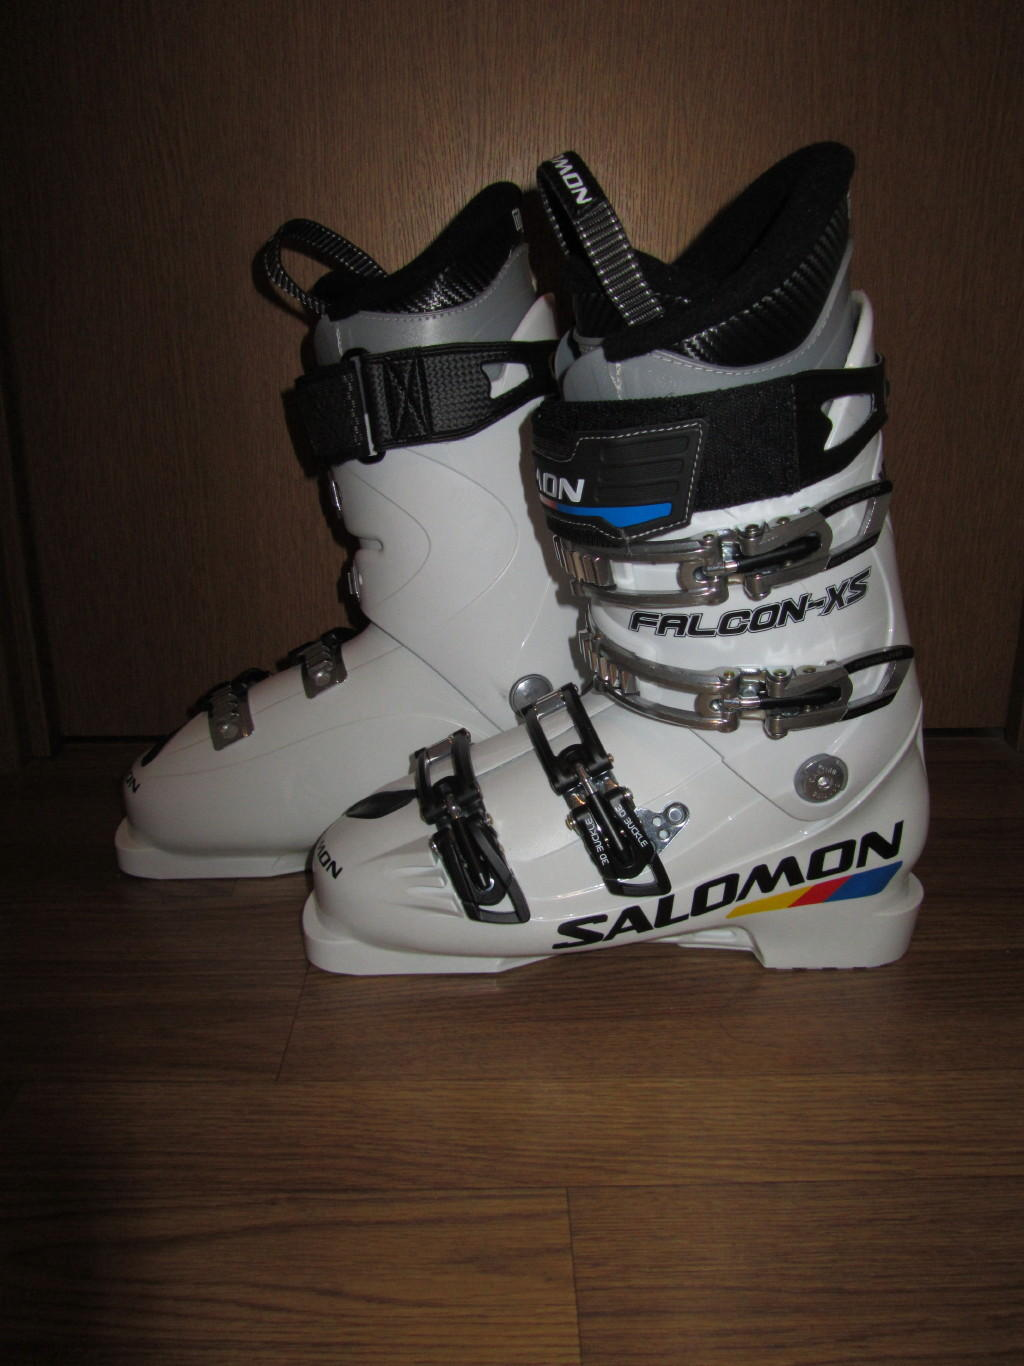 SALOMON FALCON XS JP